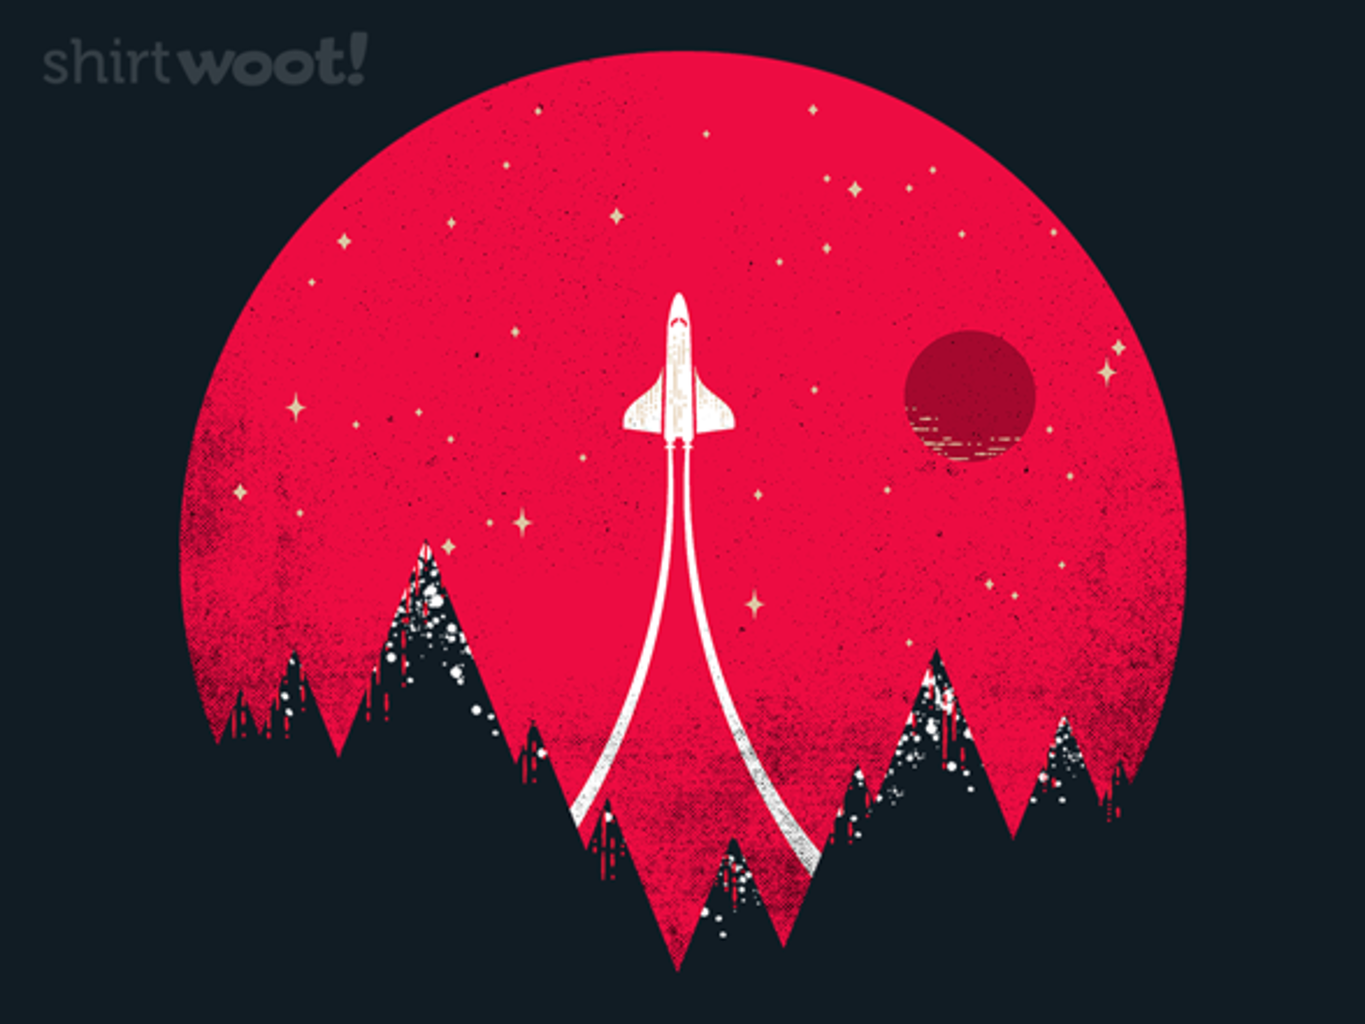 Woot!: A Journey to the Stars